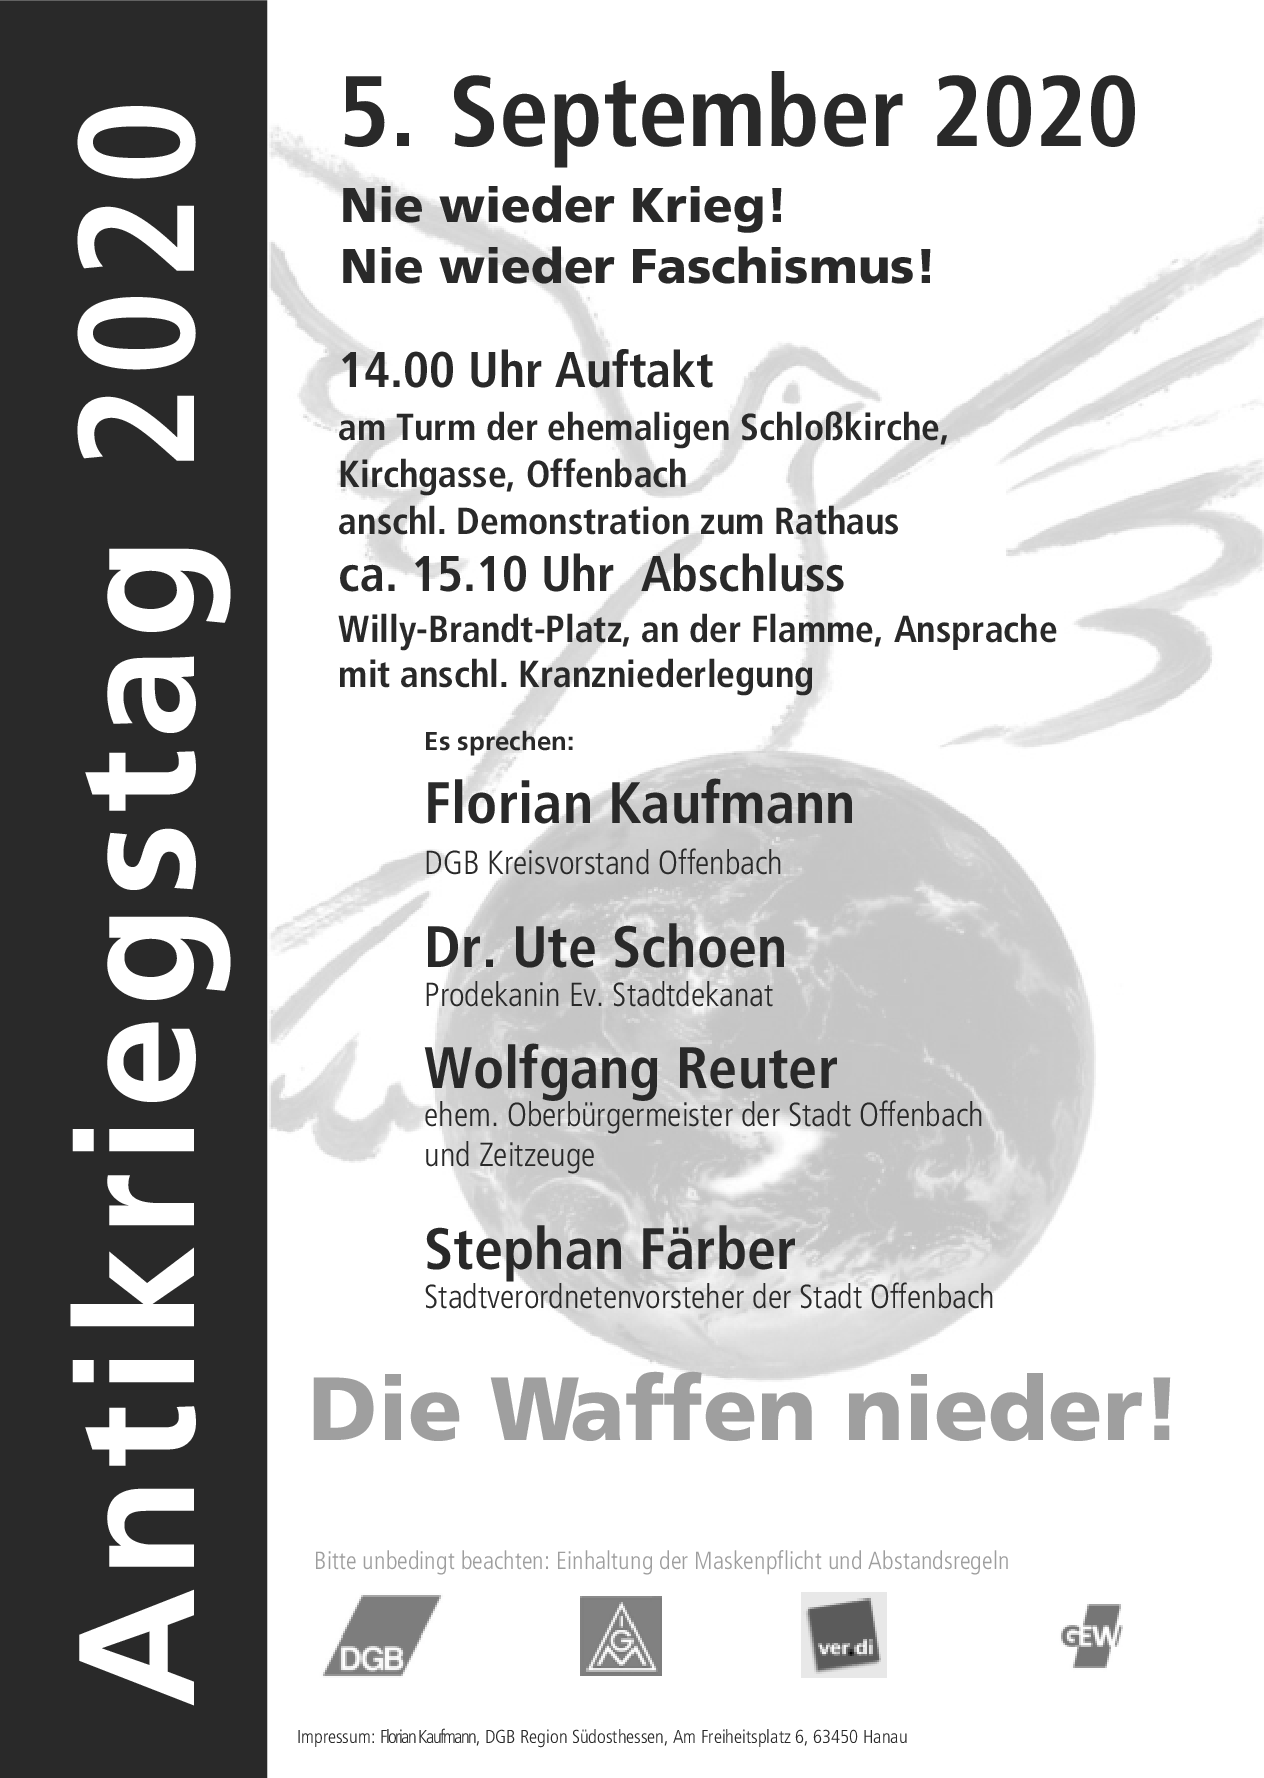 2020 09 05 Flyer Antikriegstag 001